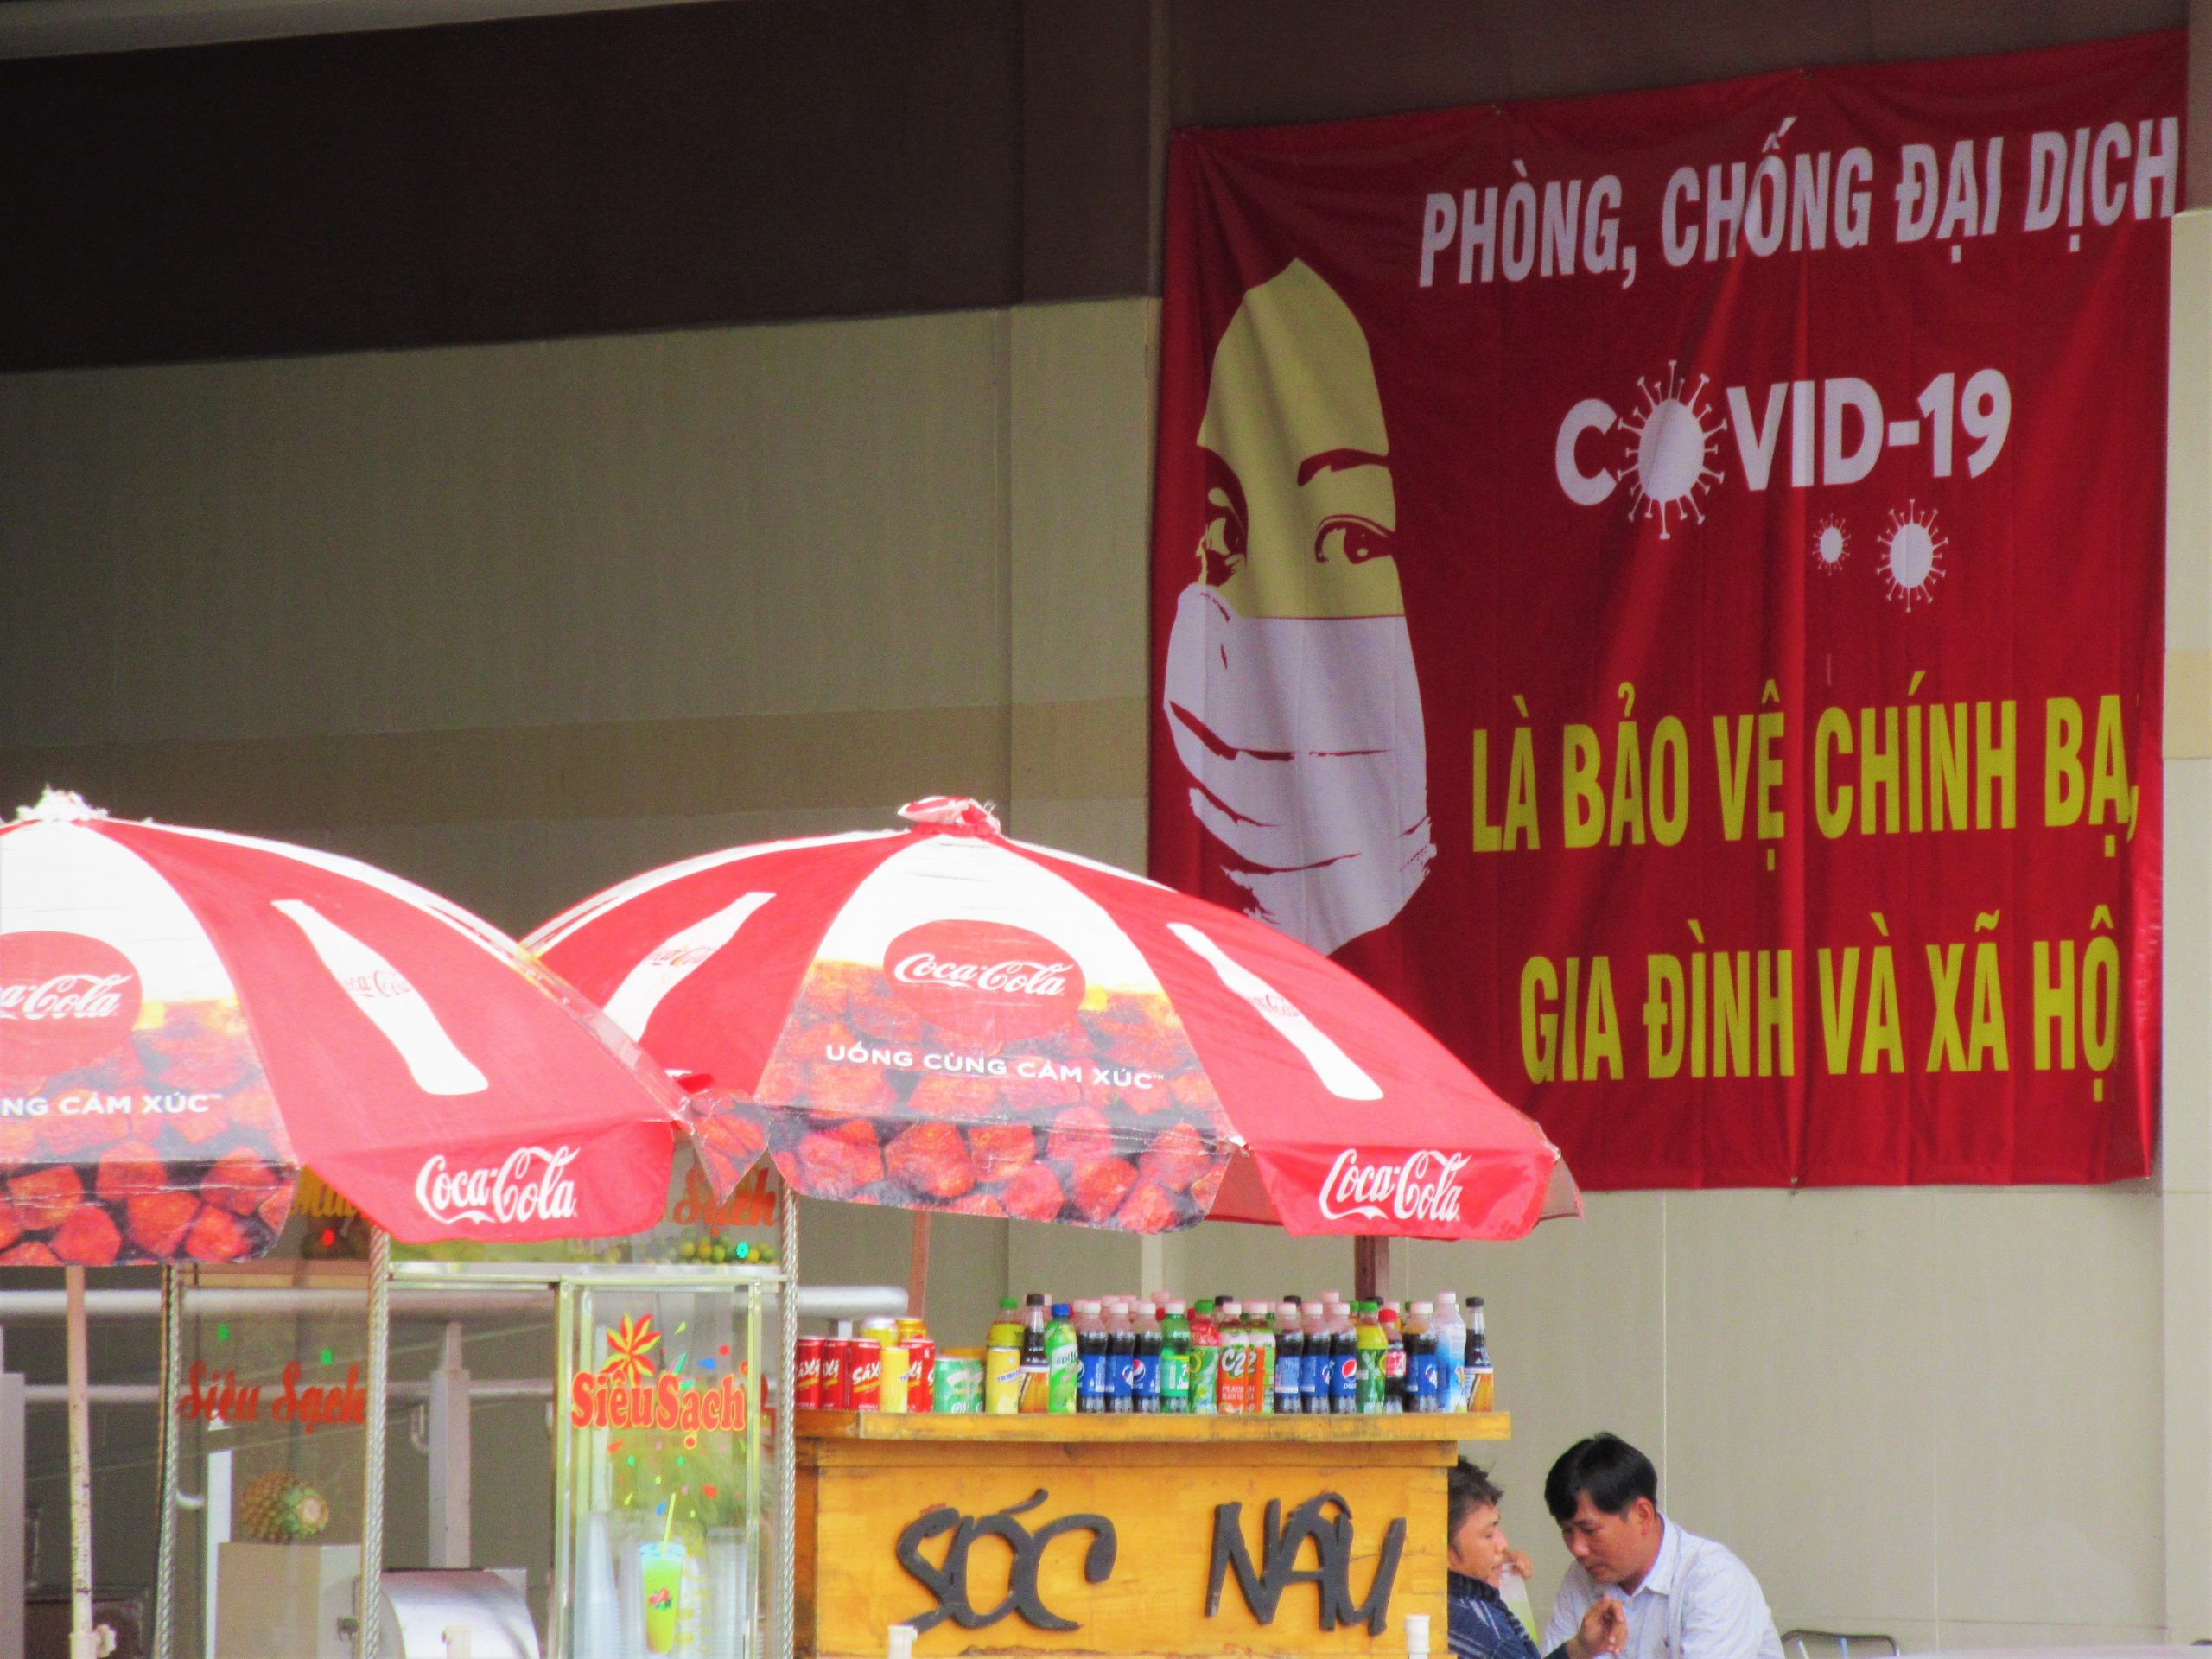 A government Covid-19 awareness poster, Vietnam